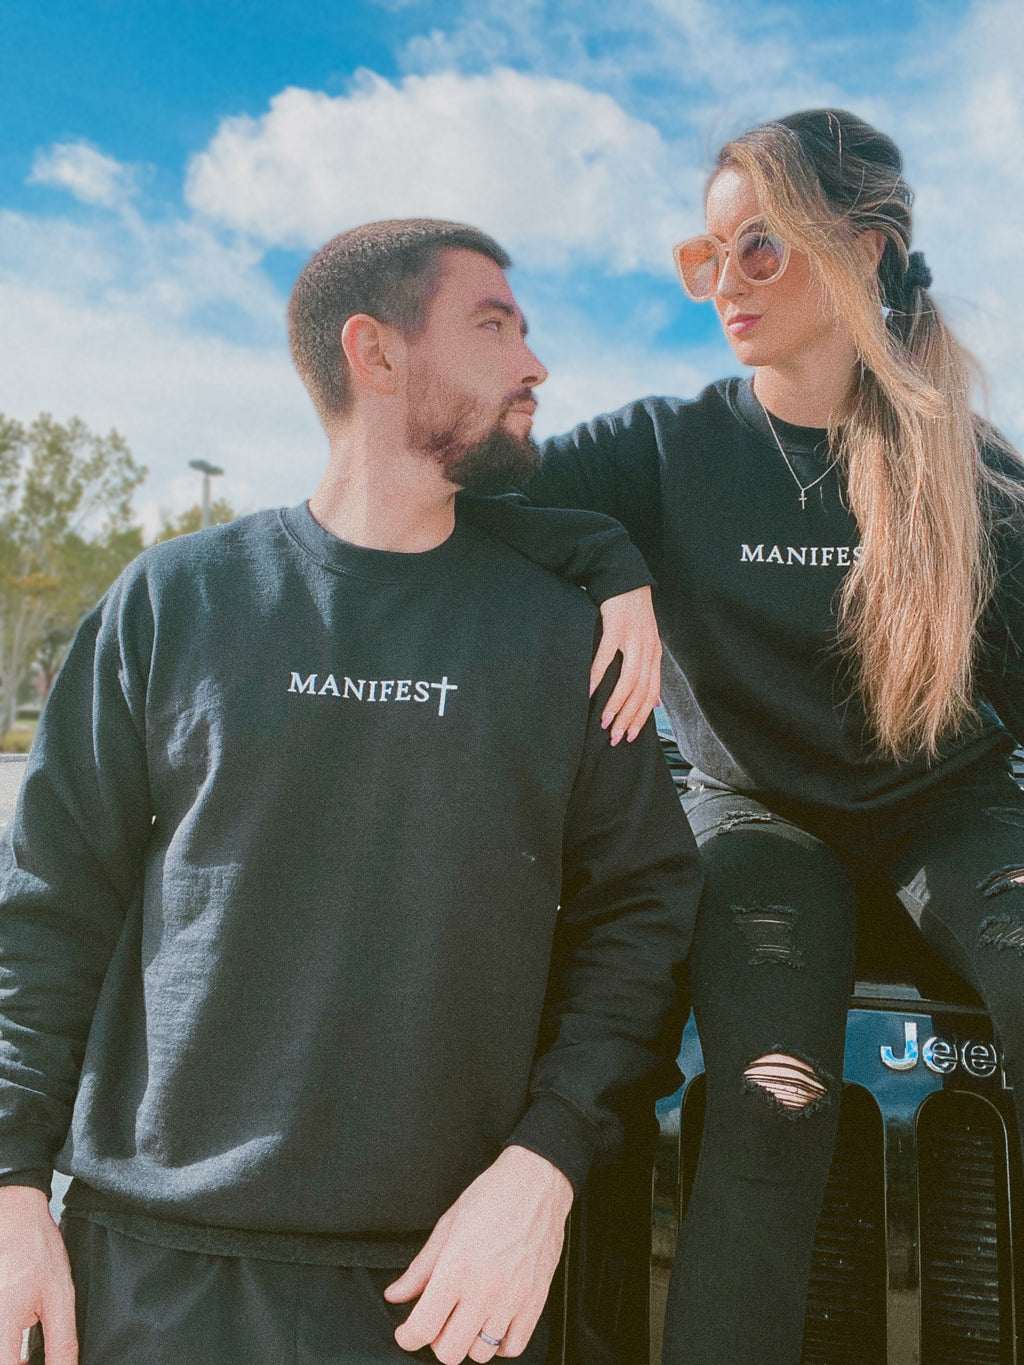 Manifest with your loved one in these cute matching manifest sweatshirts!